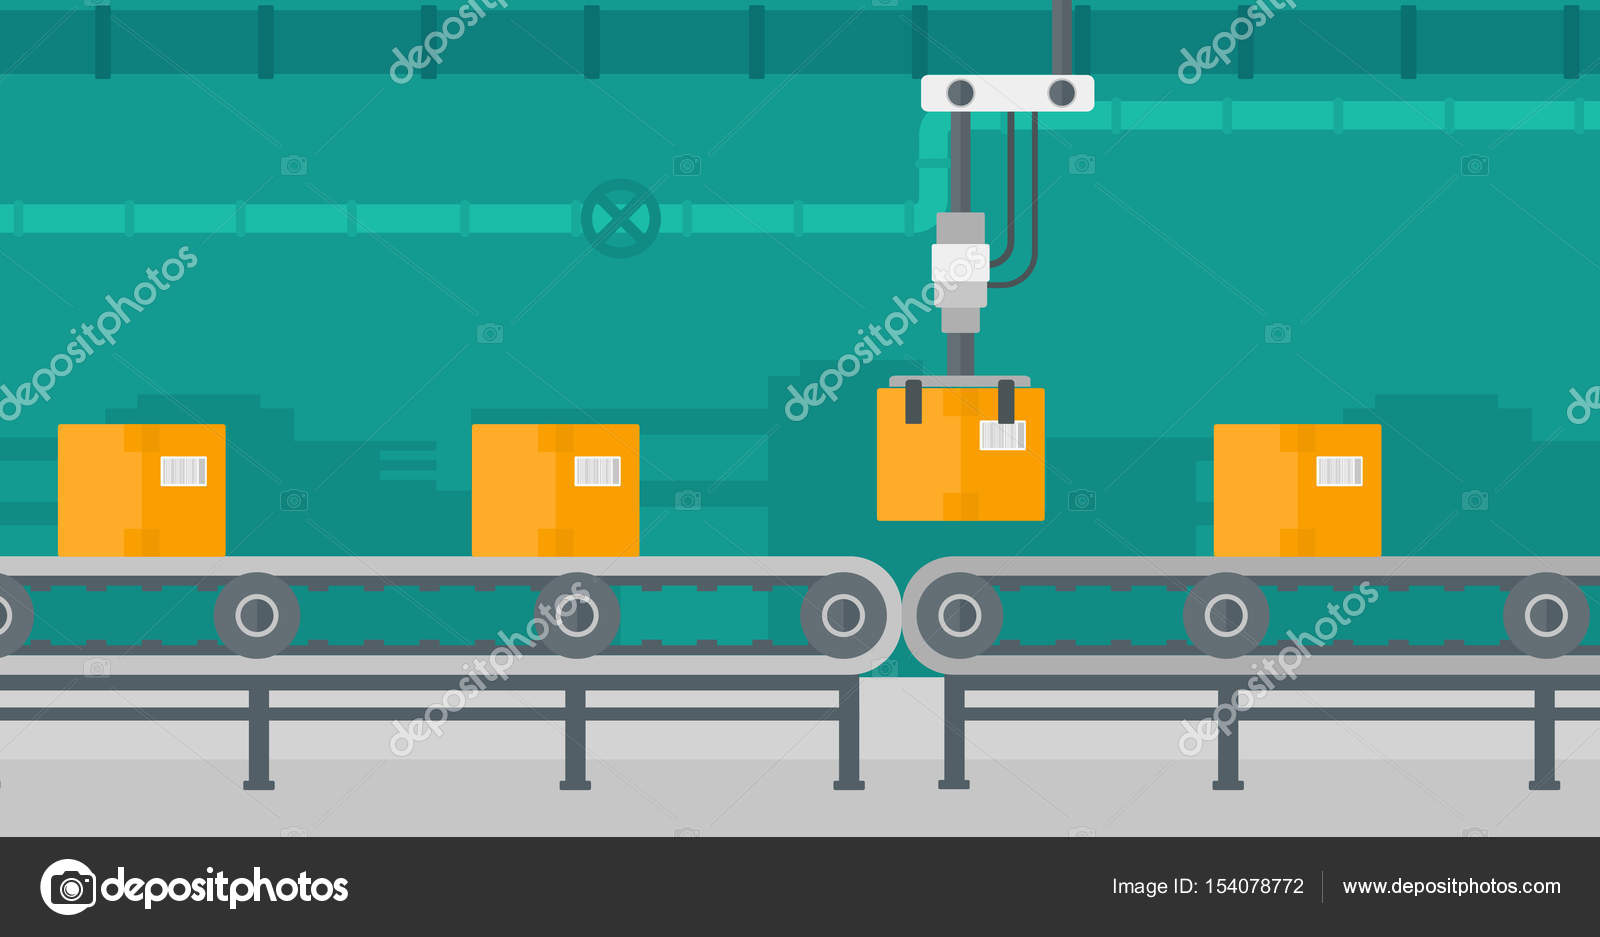 Packaging Of Products In Cardboard Boxes Robotic Arm Working On Conveyor Belt Vector Flat Design Illustration Horizontal Layout By Rastudio